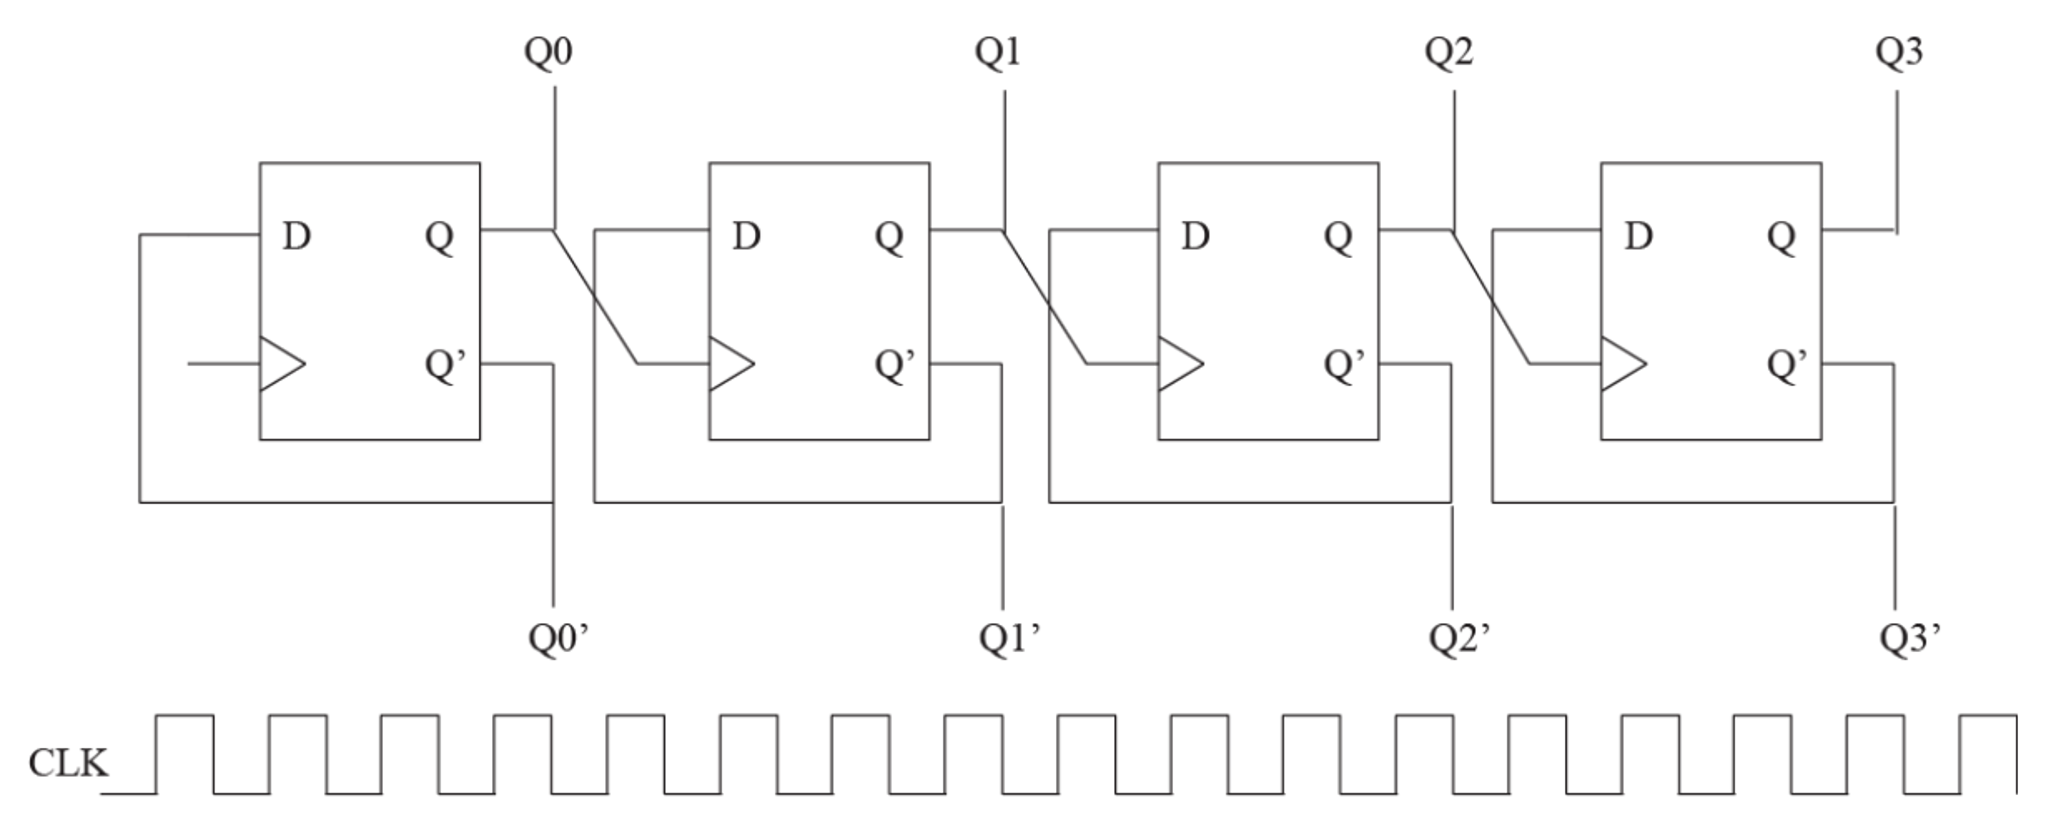 flip flop logic The following is a list of 7400-series digital logic integrated circuits  9-bit d flip-flops, clear and set inputs, inverting inputs three-state 24 sn74als844: 74x845 1 8-bit d flip-flops, clear and set inputs three-state 24 sn74als845: 74x846 1.